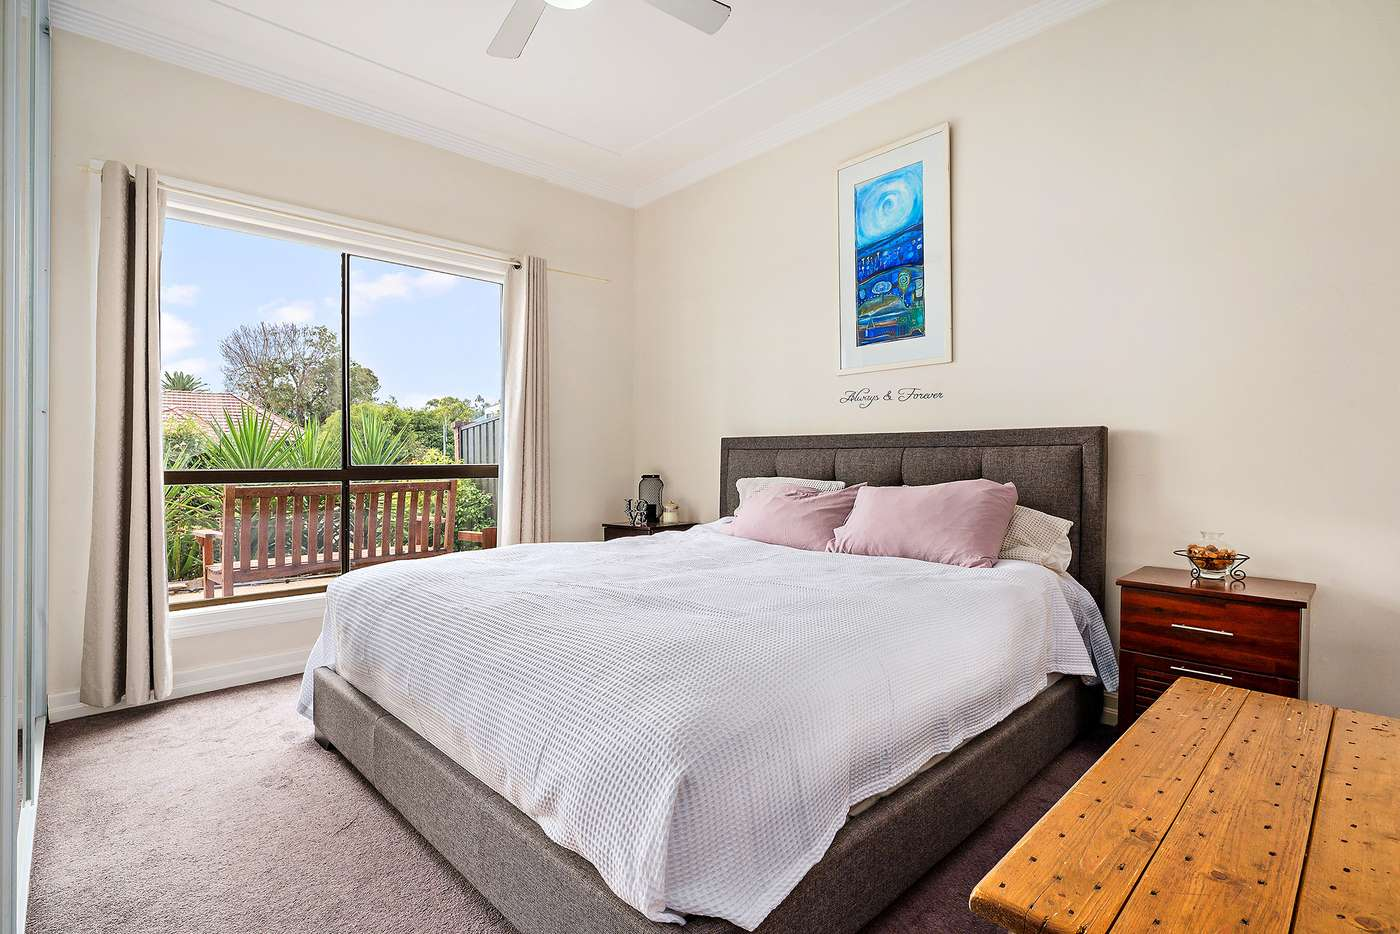 Sixth view of Homely house listing, 135 Edith Street, Waratah NSW 2298